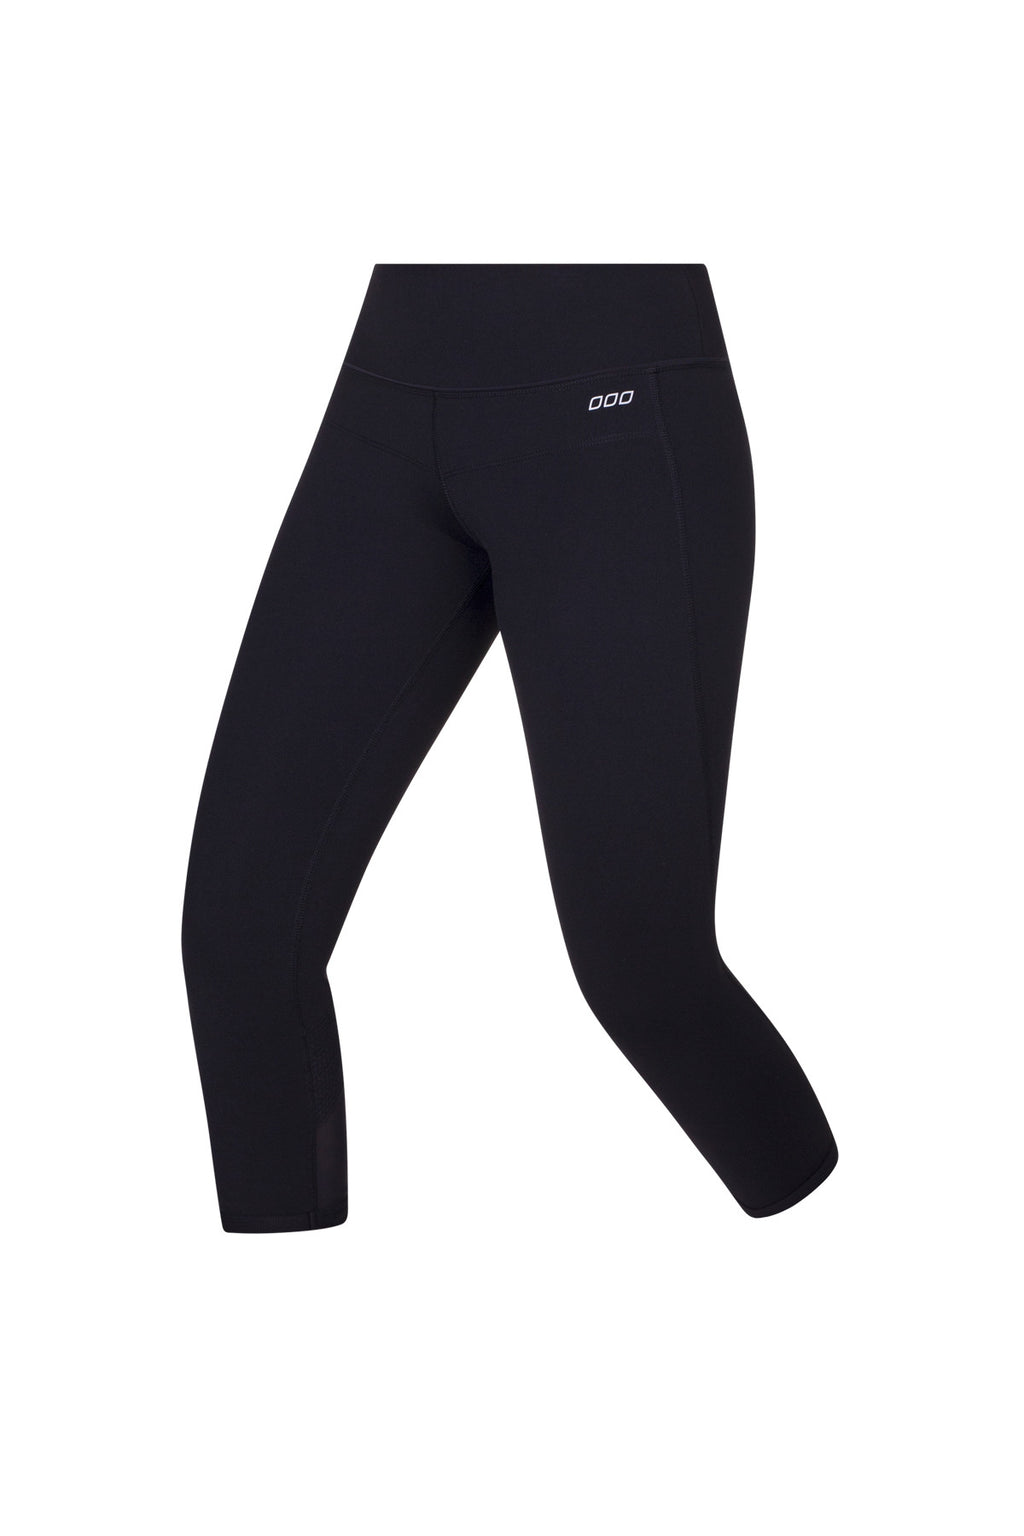 Dance Core Stability 7/8 Tight - Final Sale - Final Sale